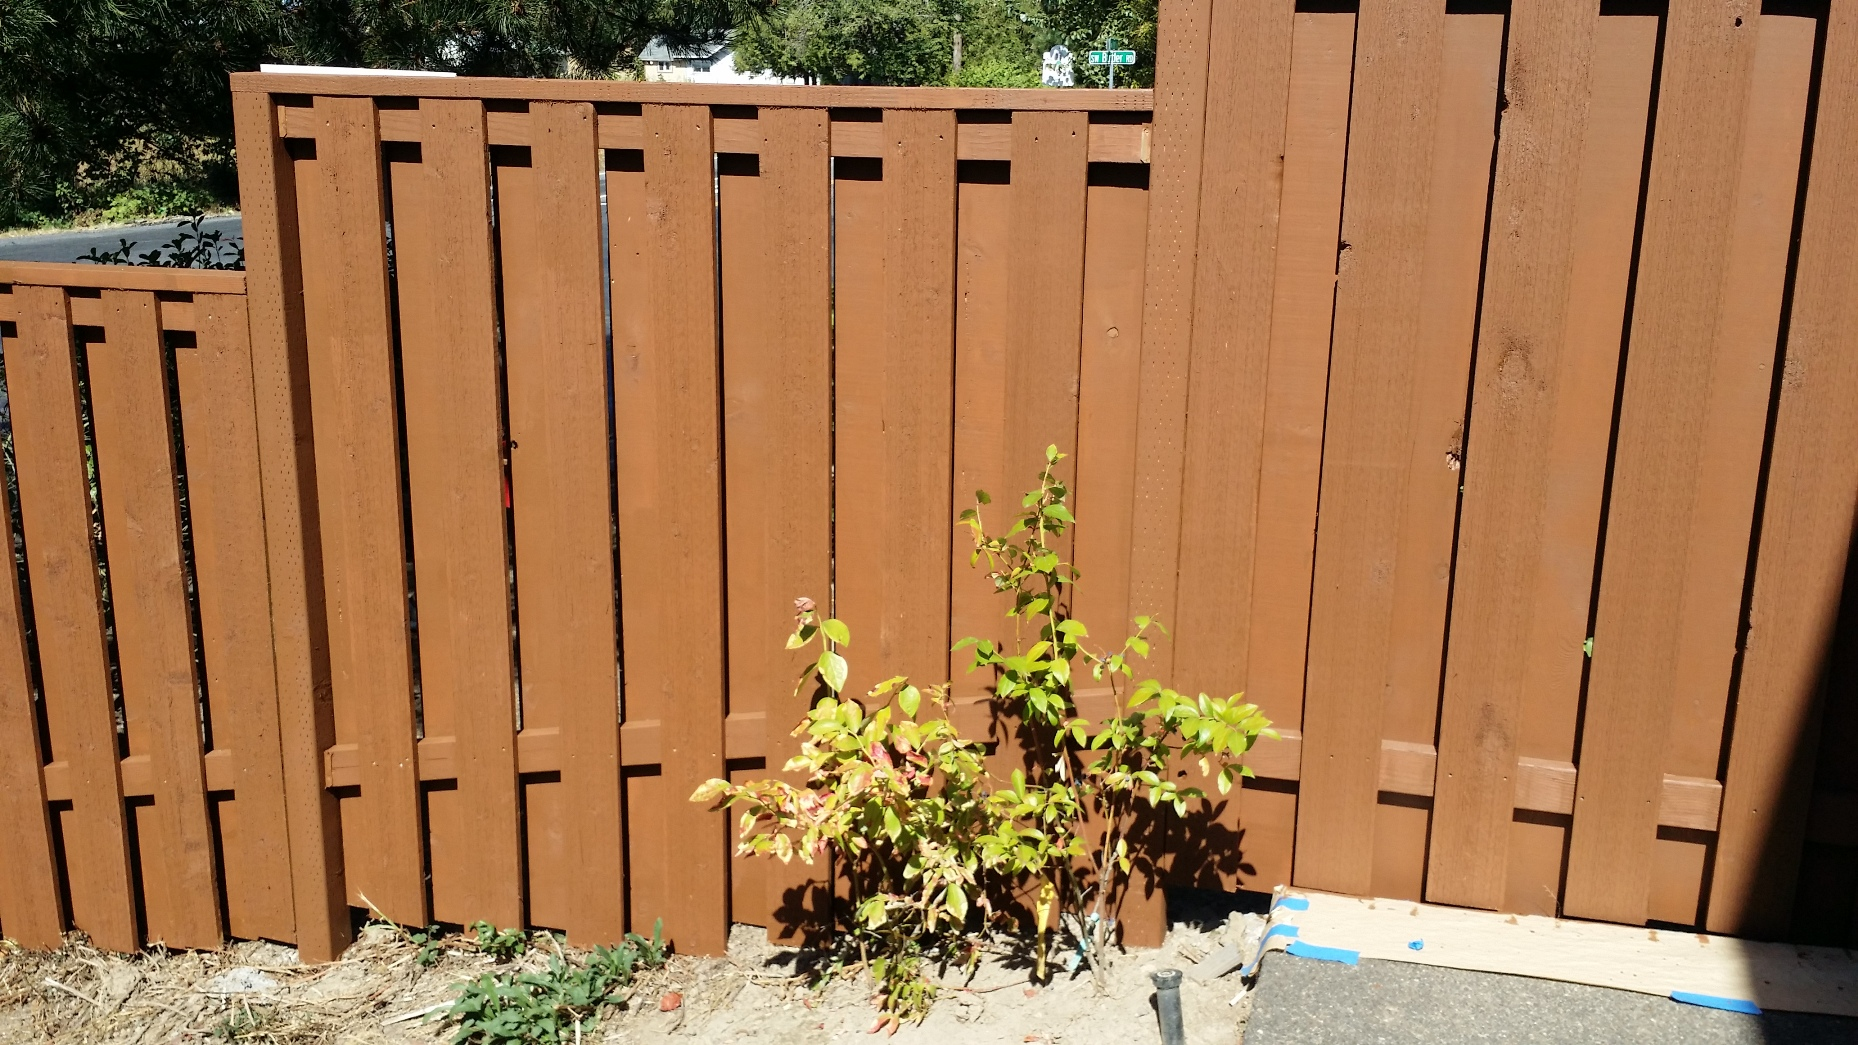 Louisville fence repair quote, Louisville fence contractor, Louisville fencing company, Fence Repair Louisville, Louisville fencing repair